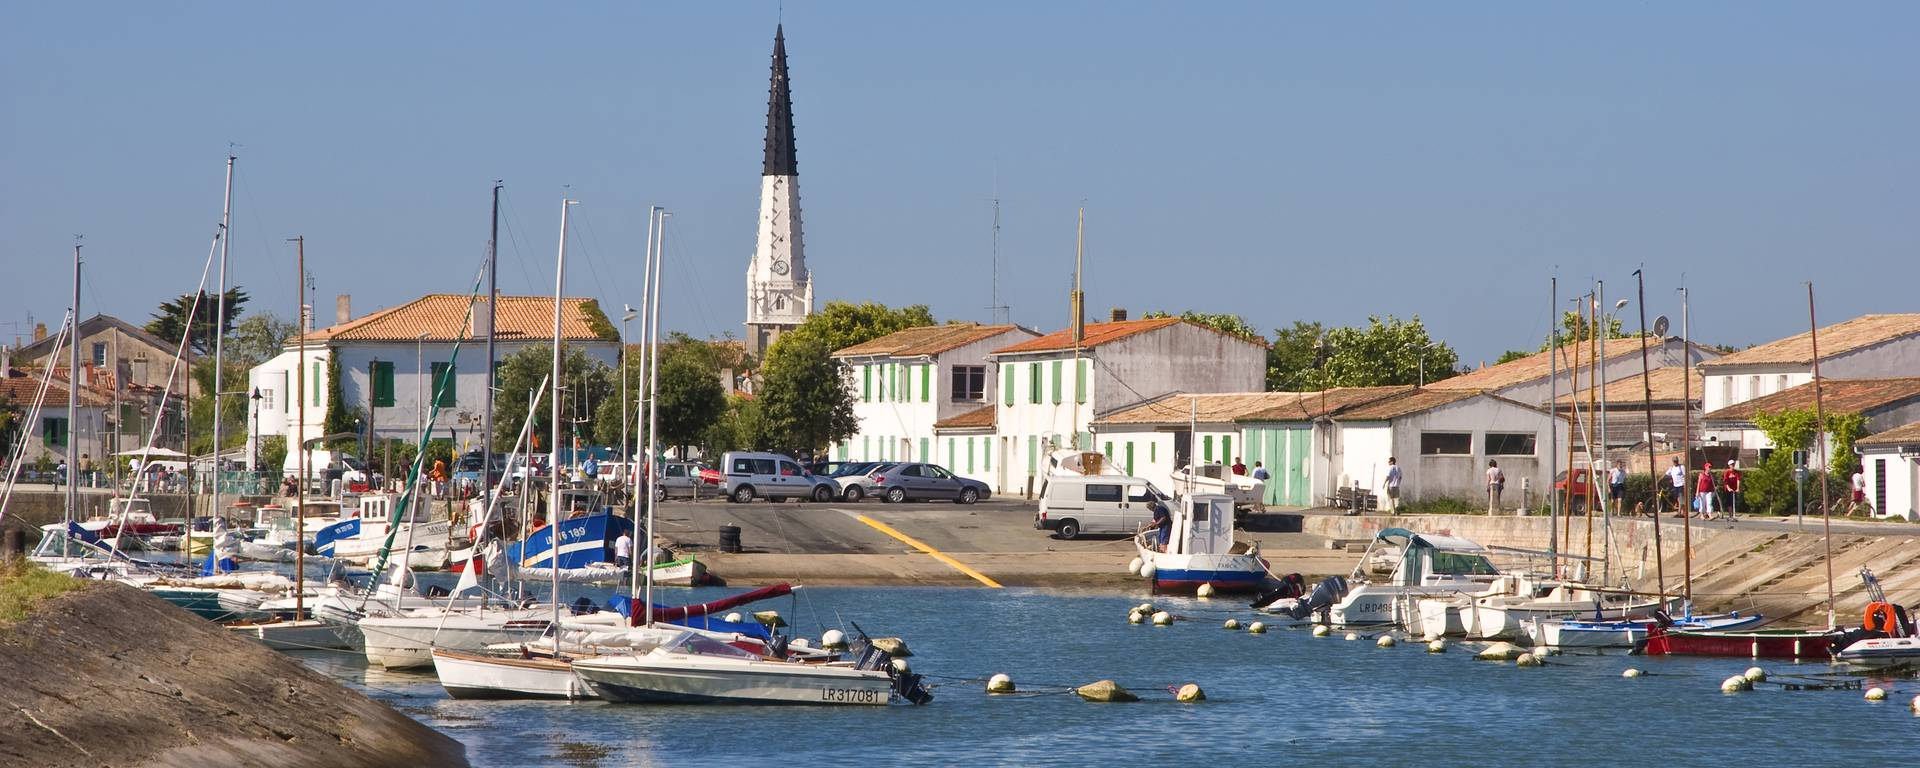 10 villages 10 visages destination ile de r site officiel de l 39 office de tourisme - Office tourisme ars en re ...